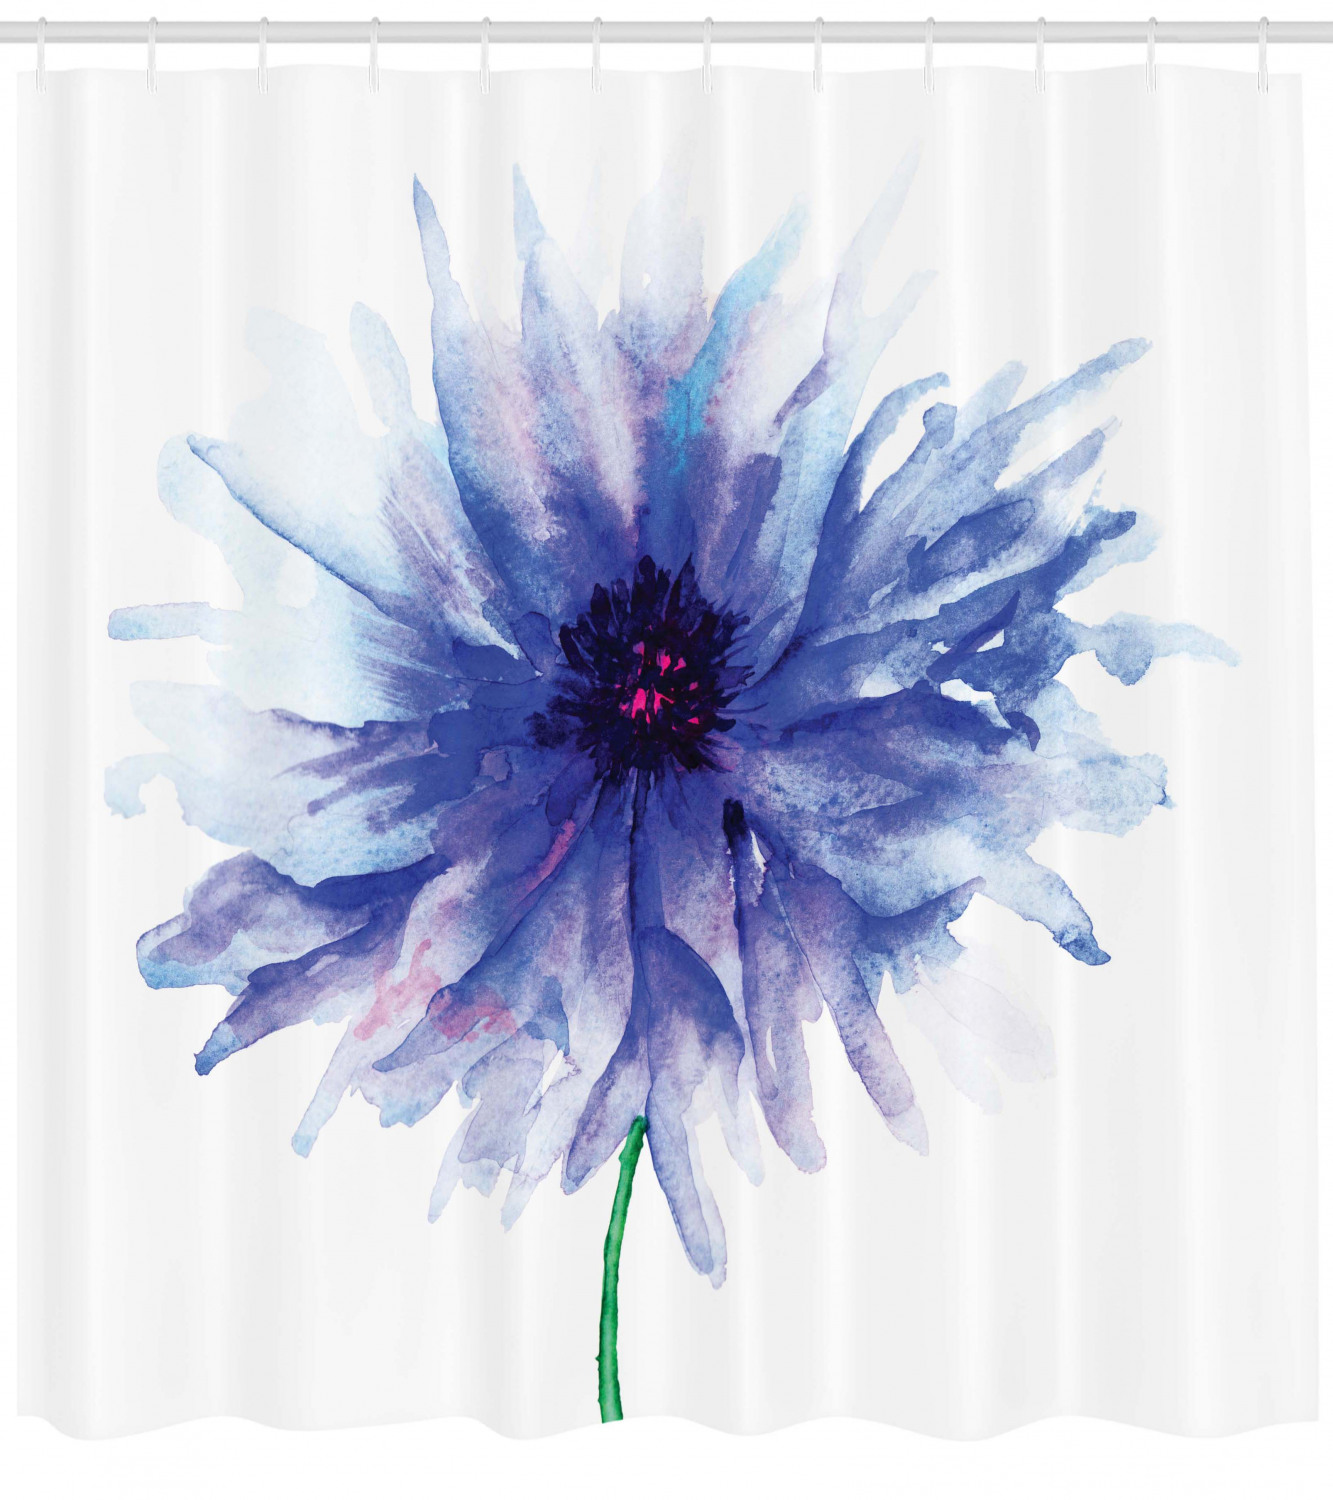 watercolor flower shower curtain single large petite cornflower plain background mother earth paint fabric bathroom set with hooks navy blue white